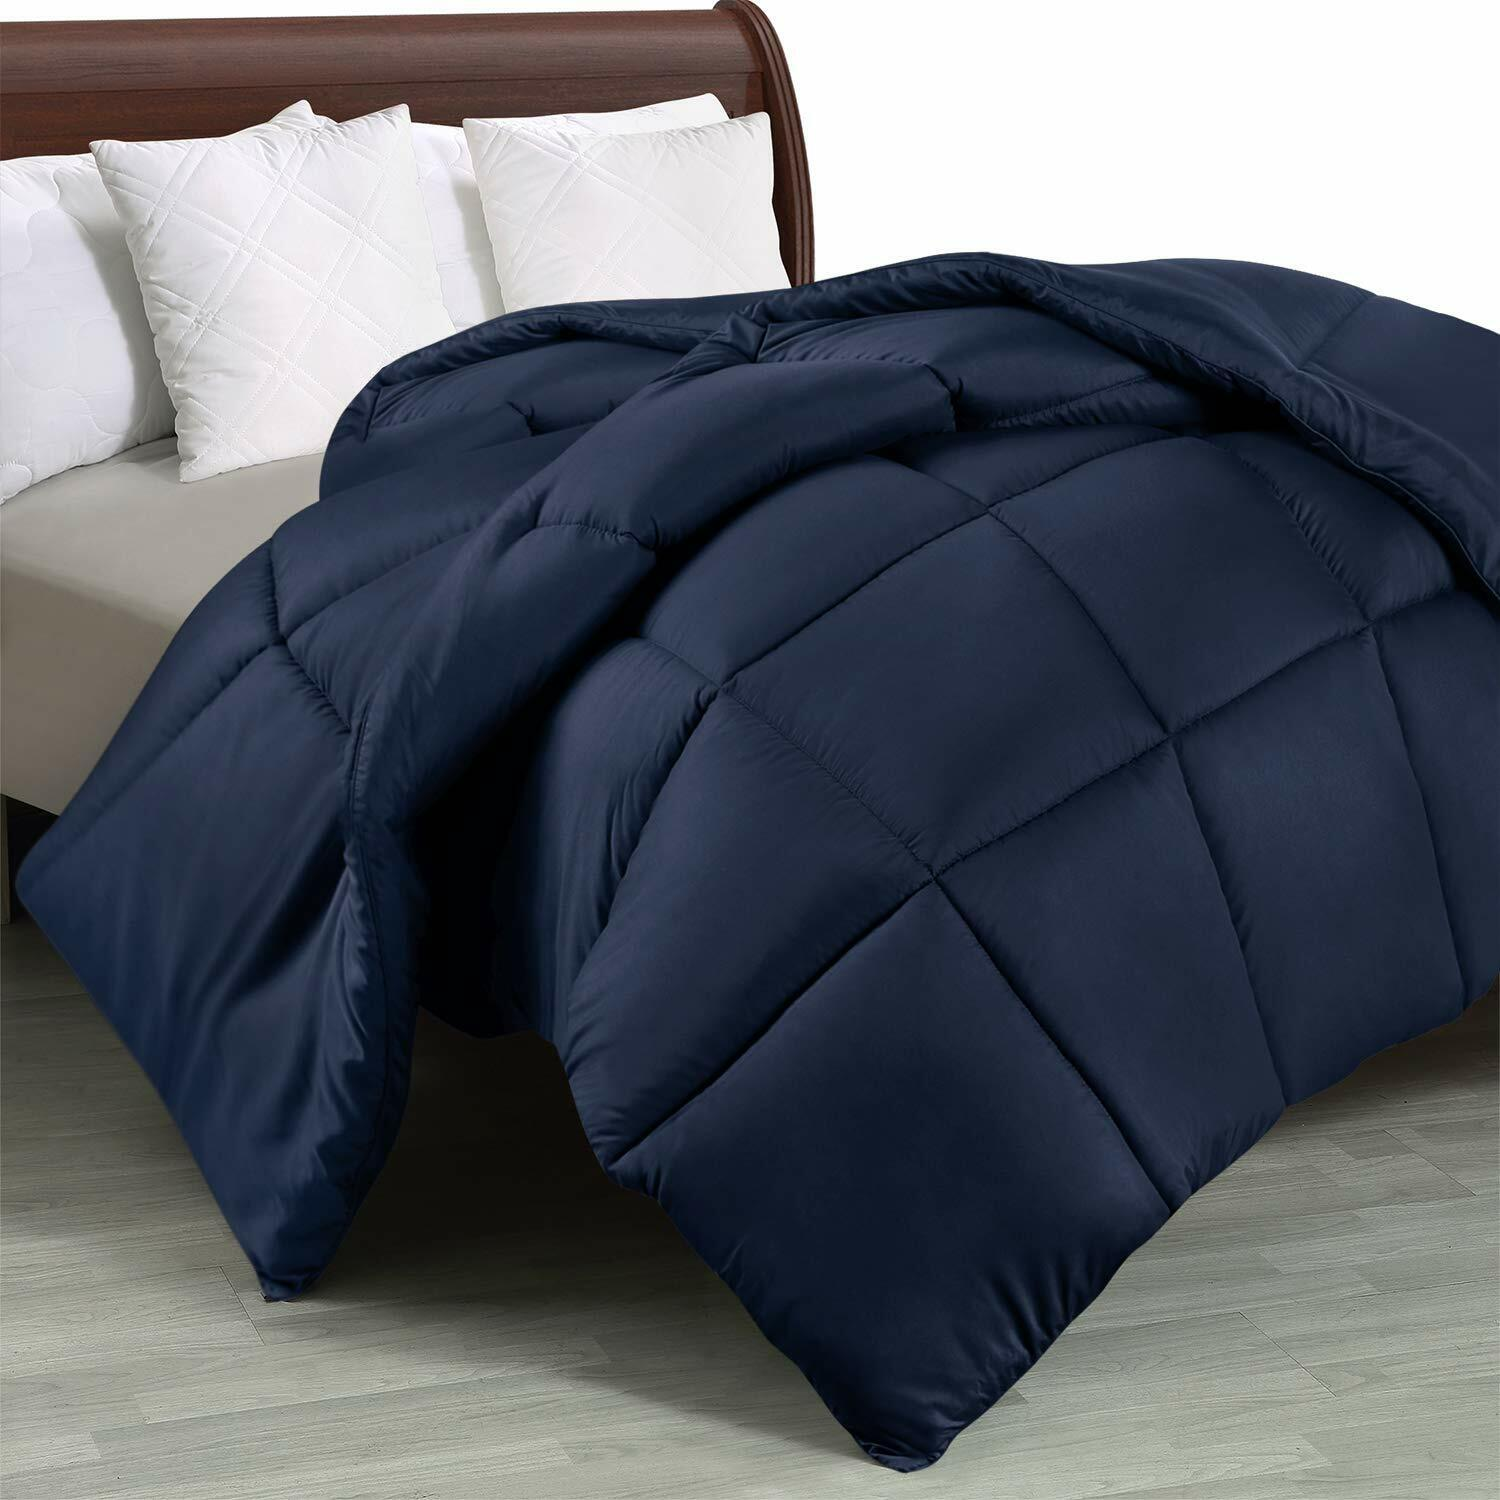 Quilted Comforter with Corner Tabs Box Stitched Down Alterna